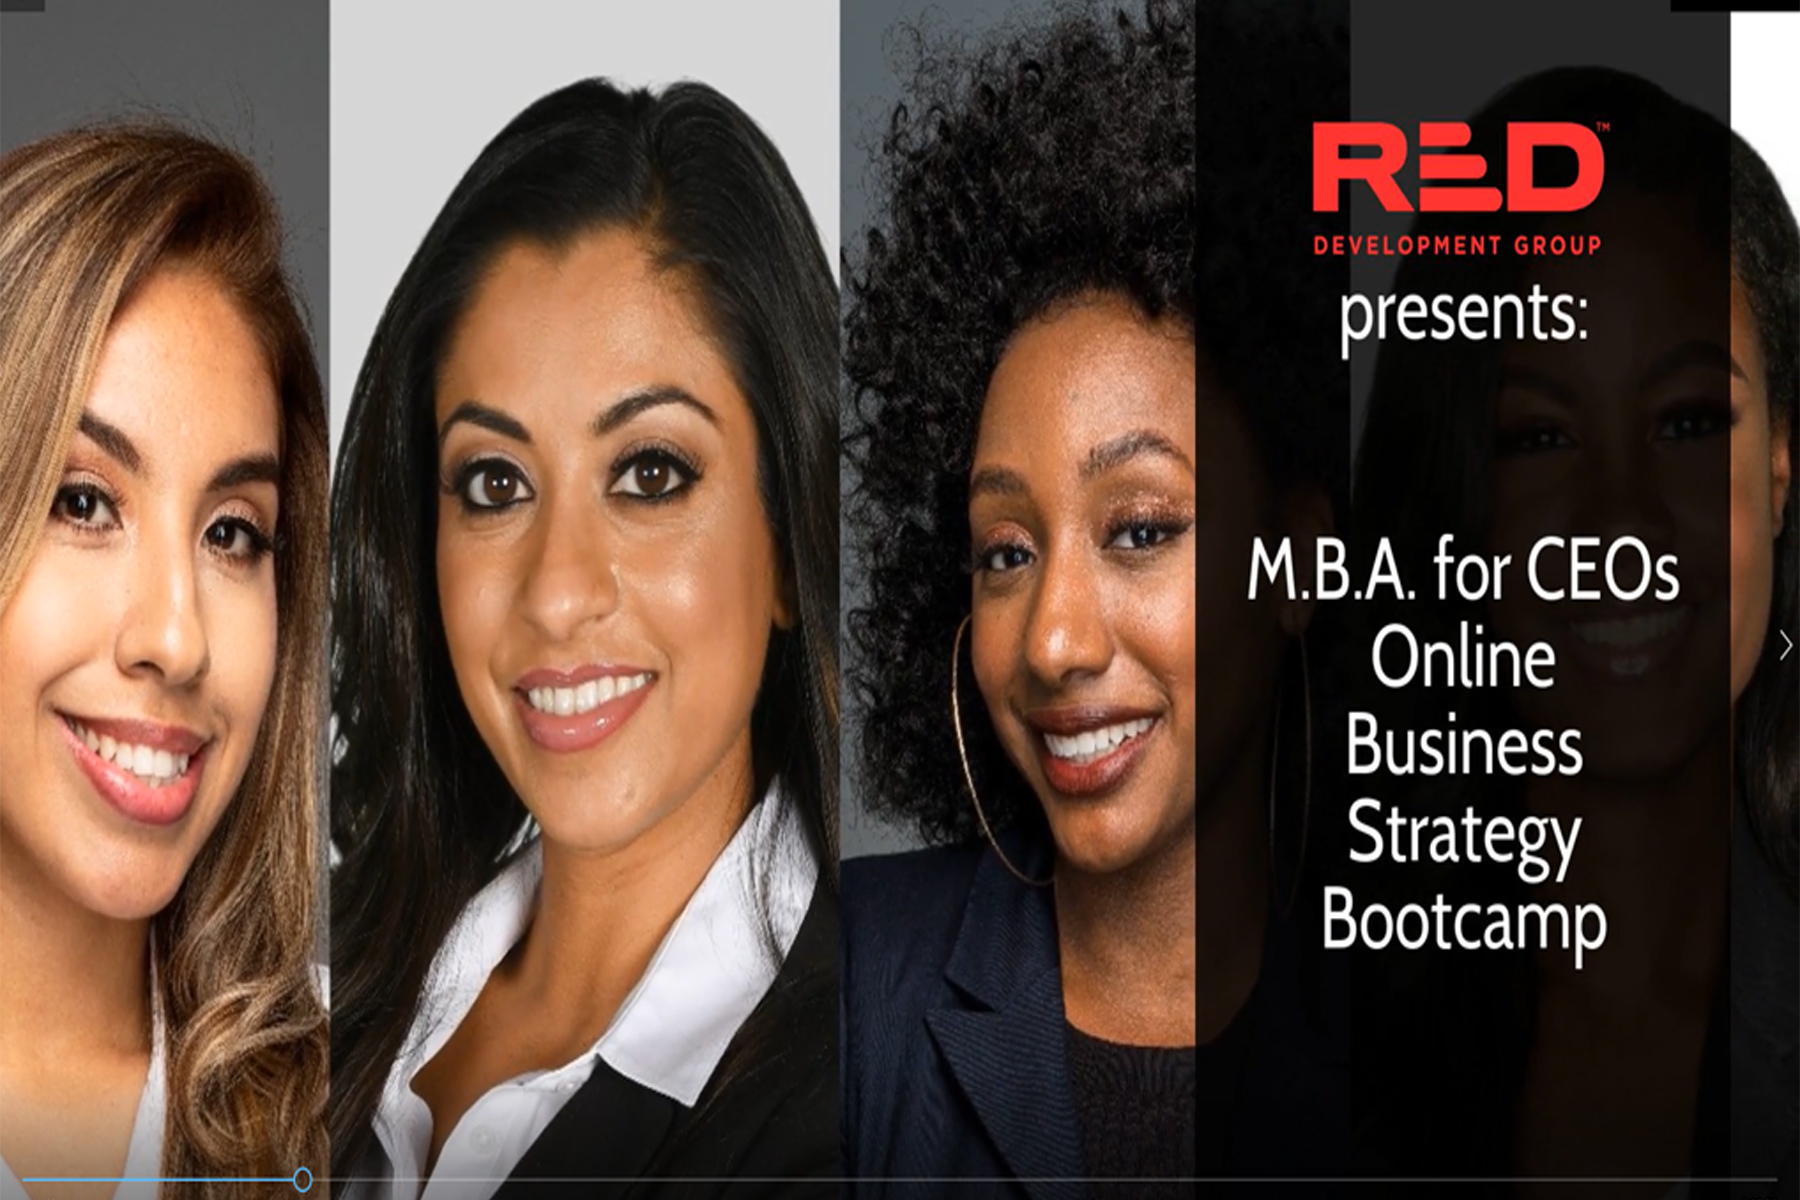 M.B.A. for CEOs Business Strategy Bootcamp